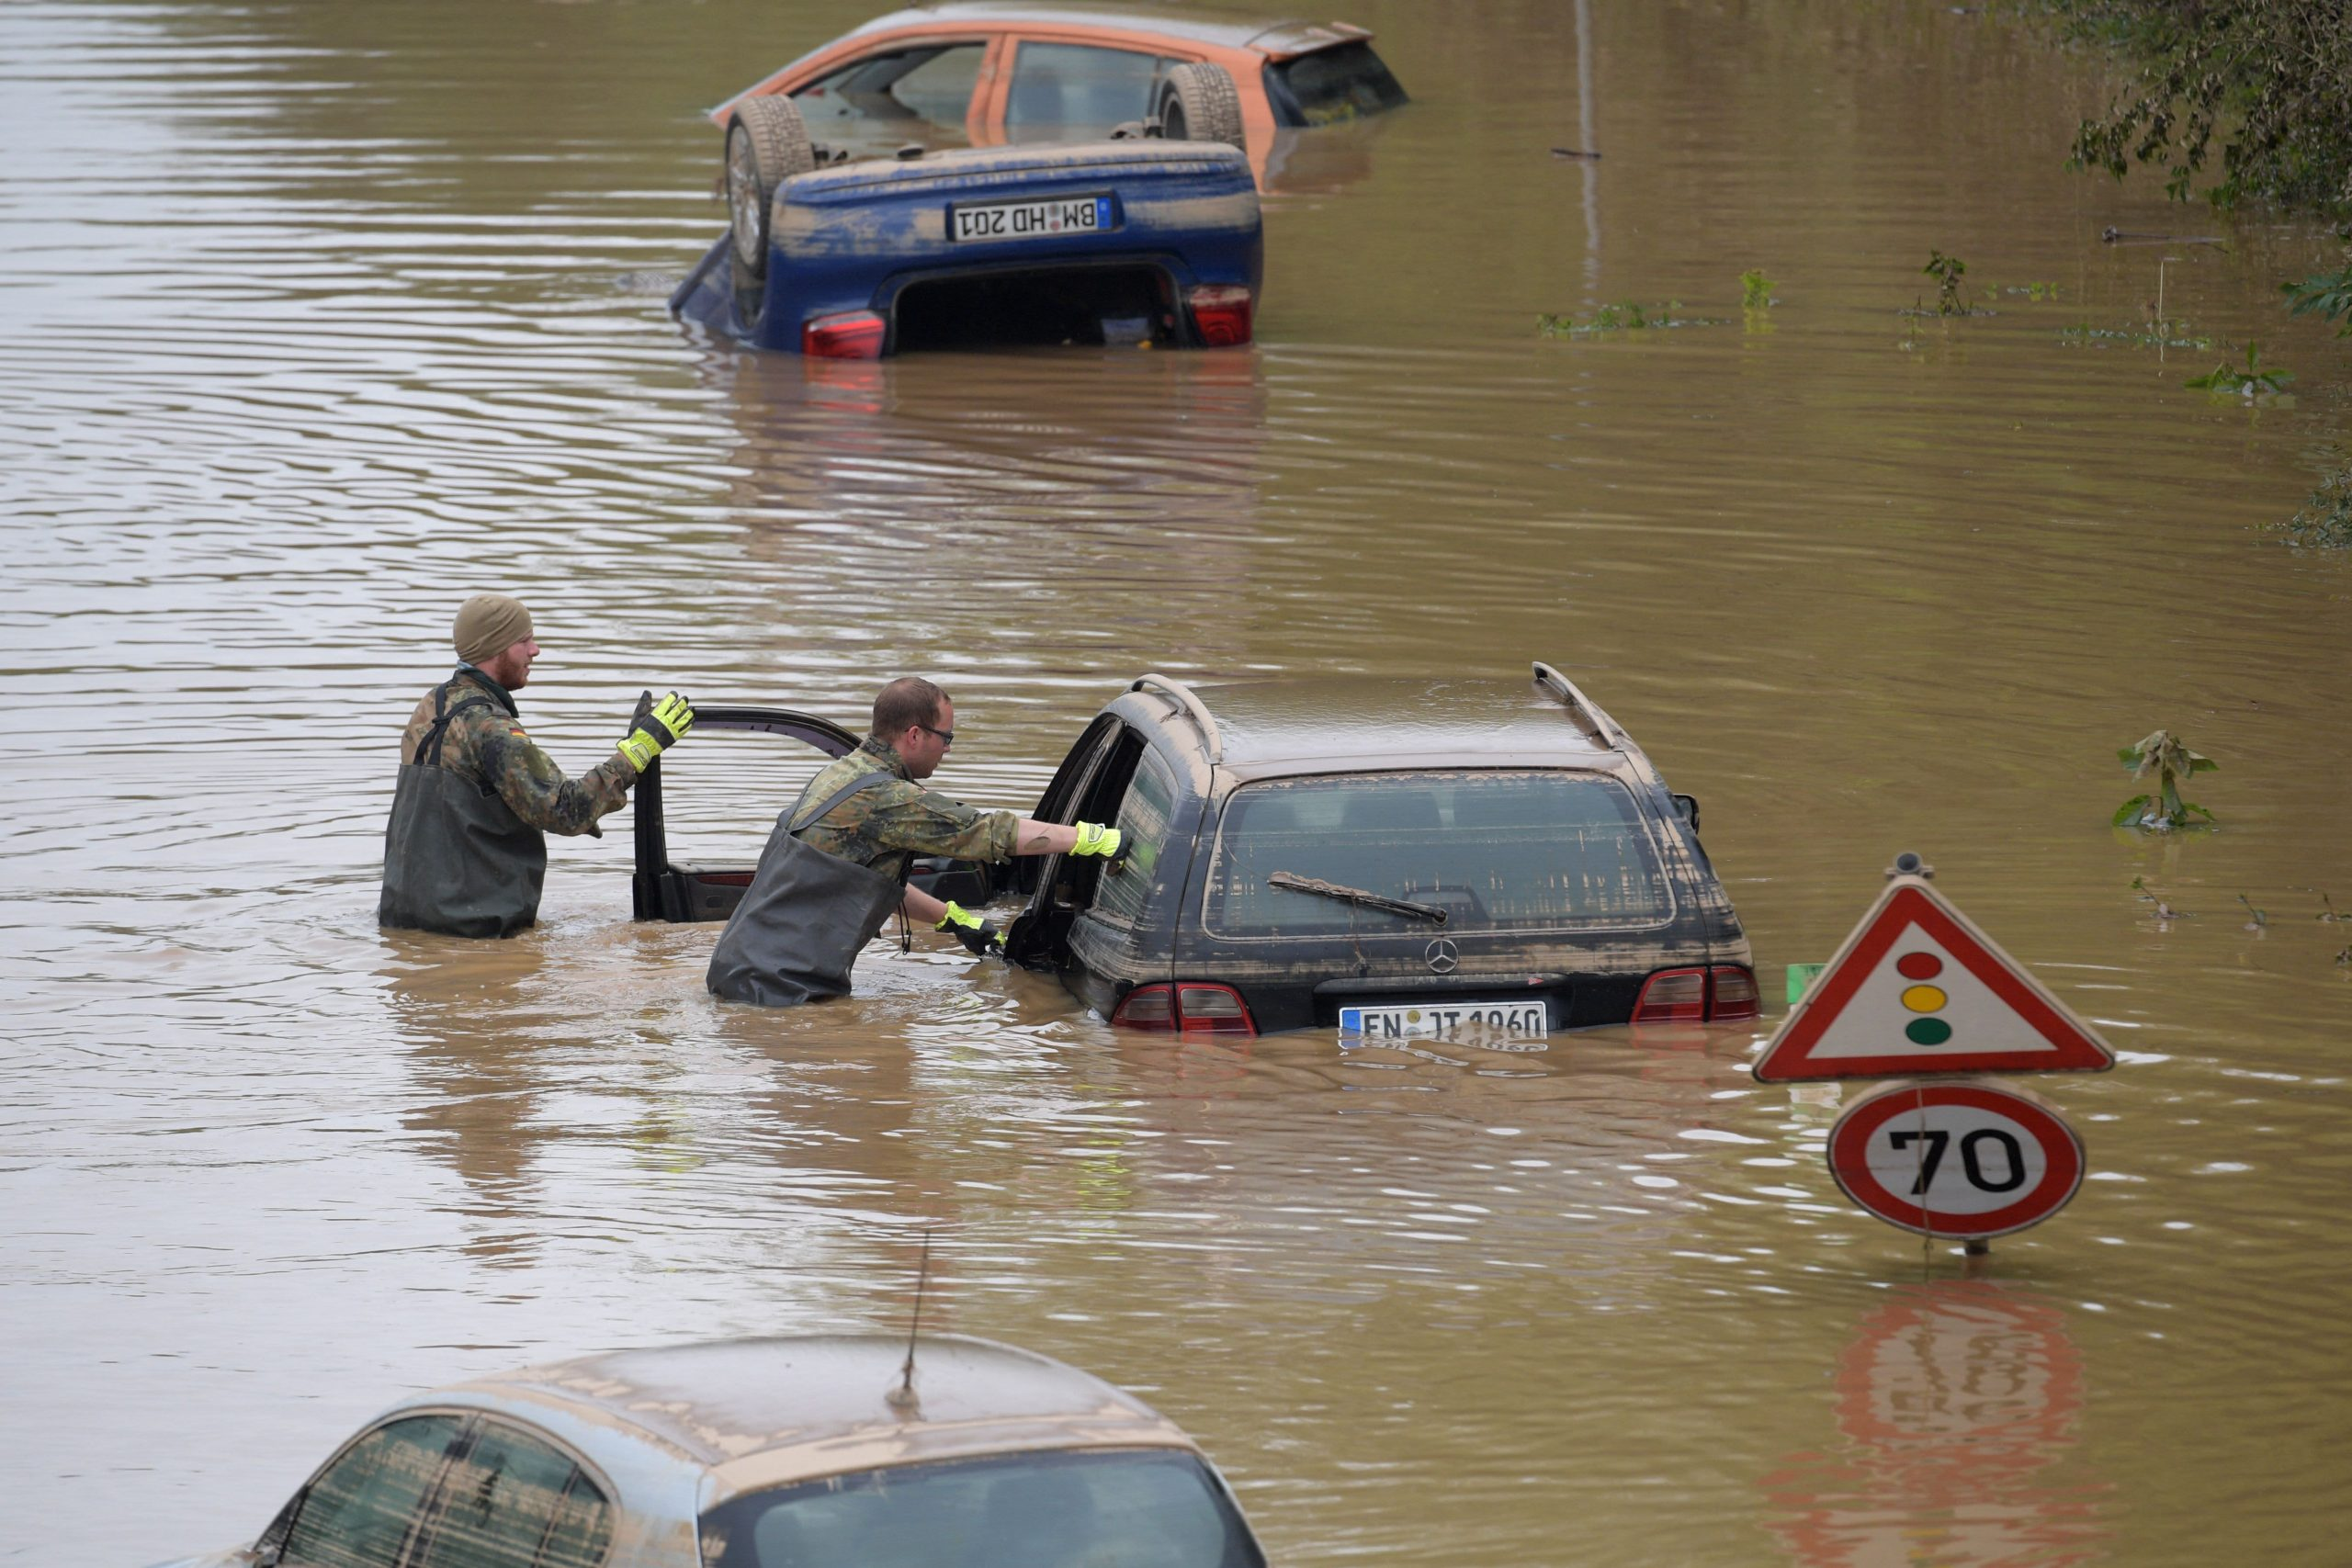 Global shipping industry disrupted again, this time by floods in Europe and China